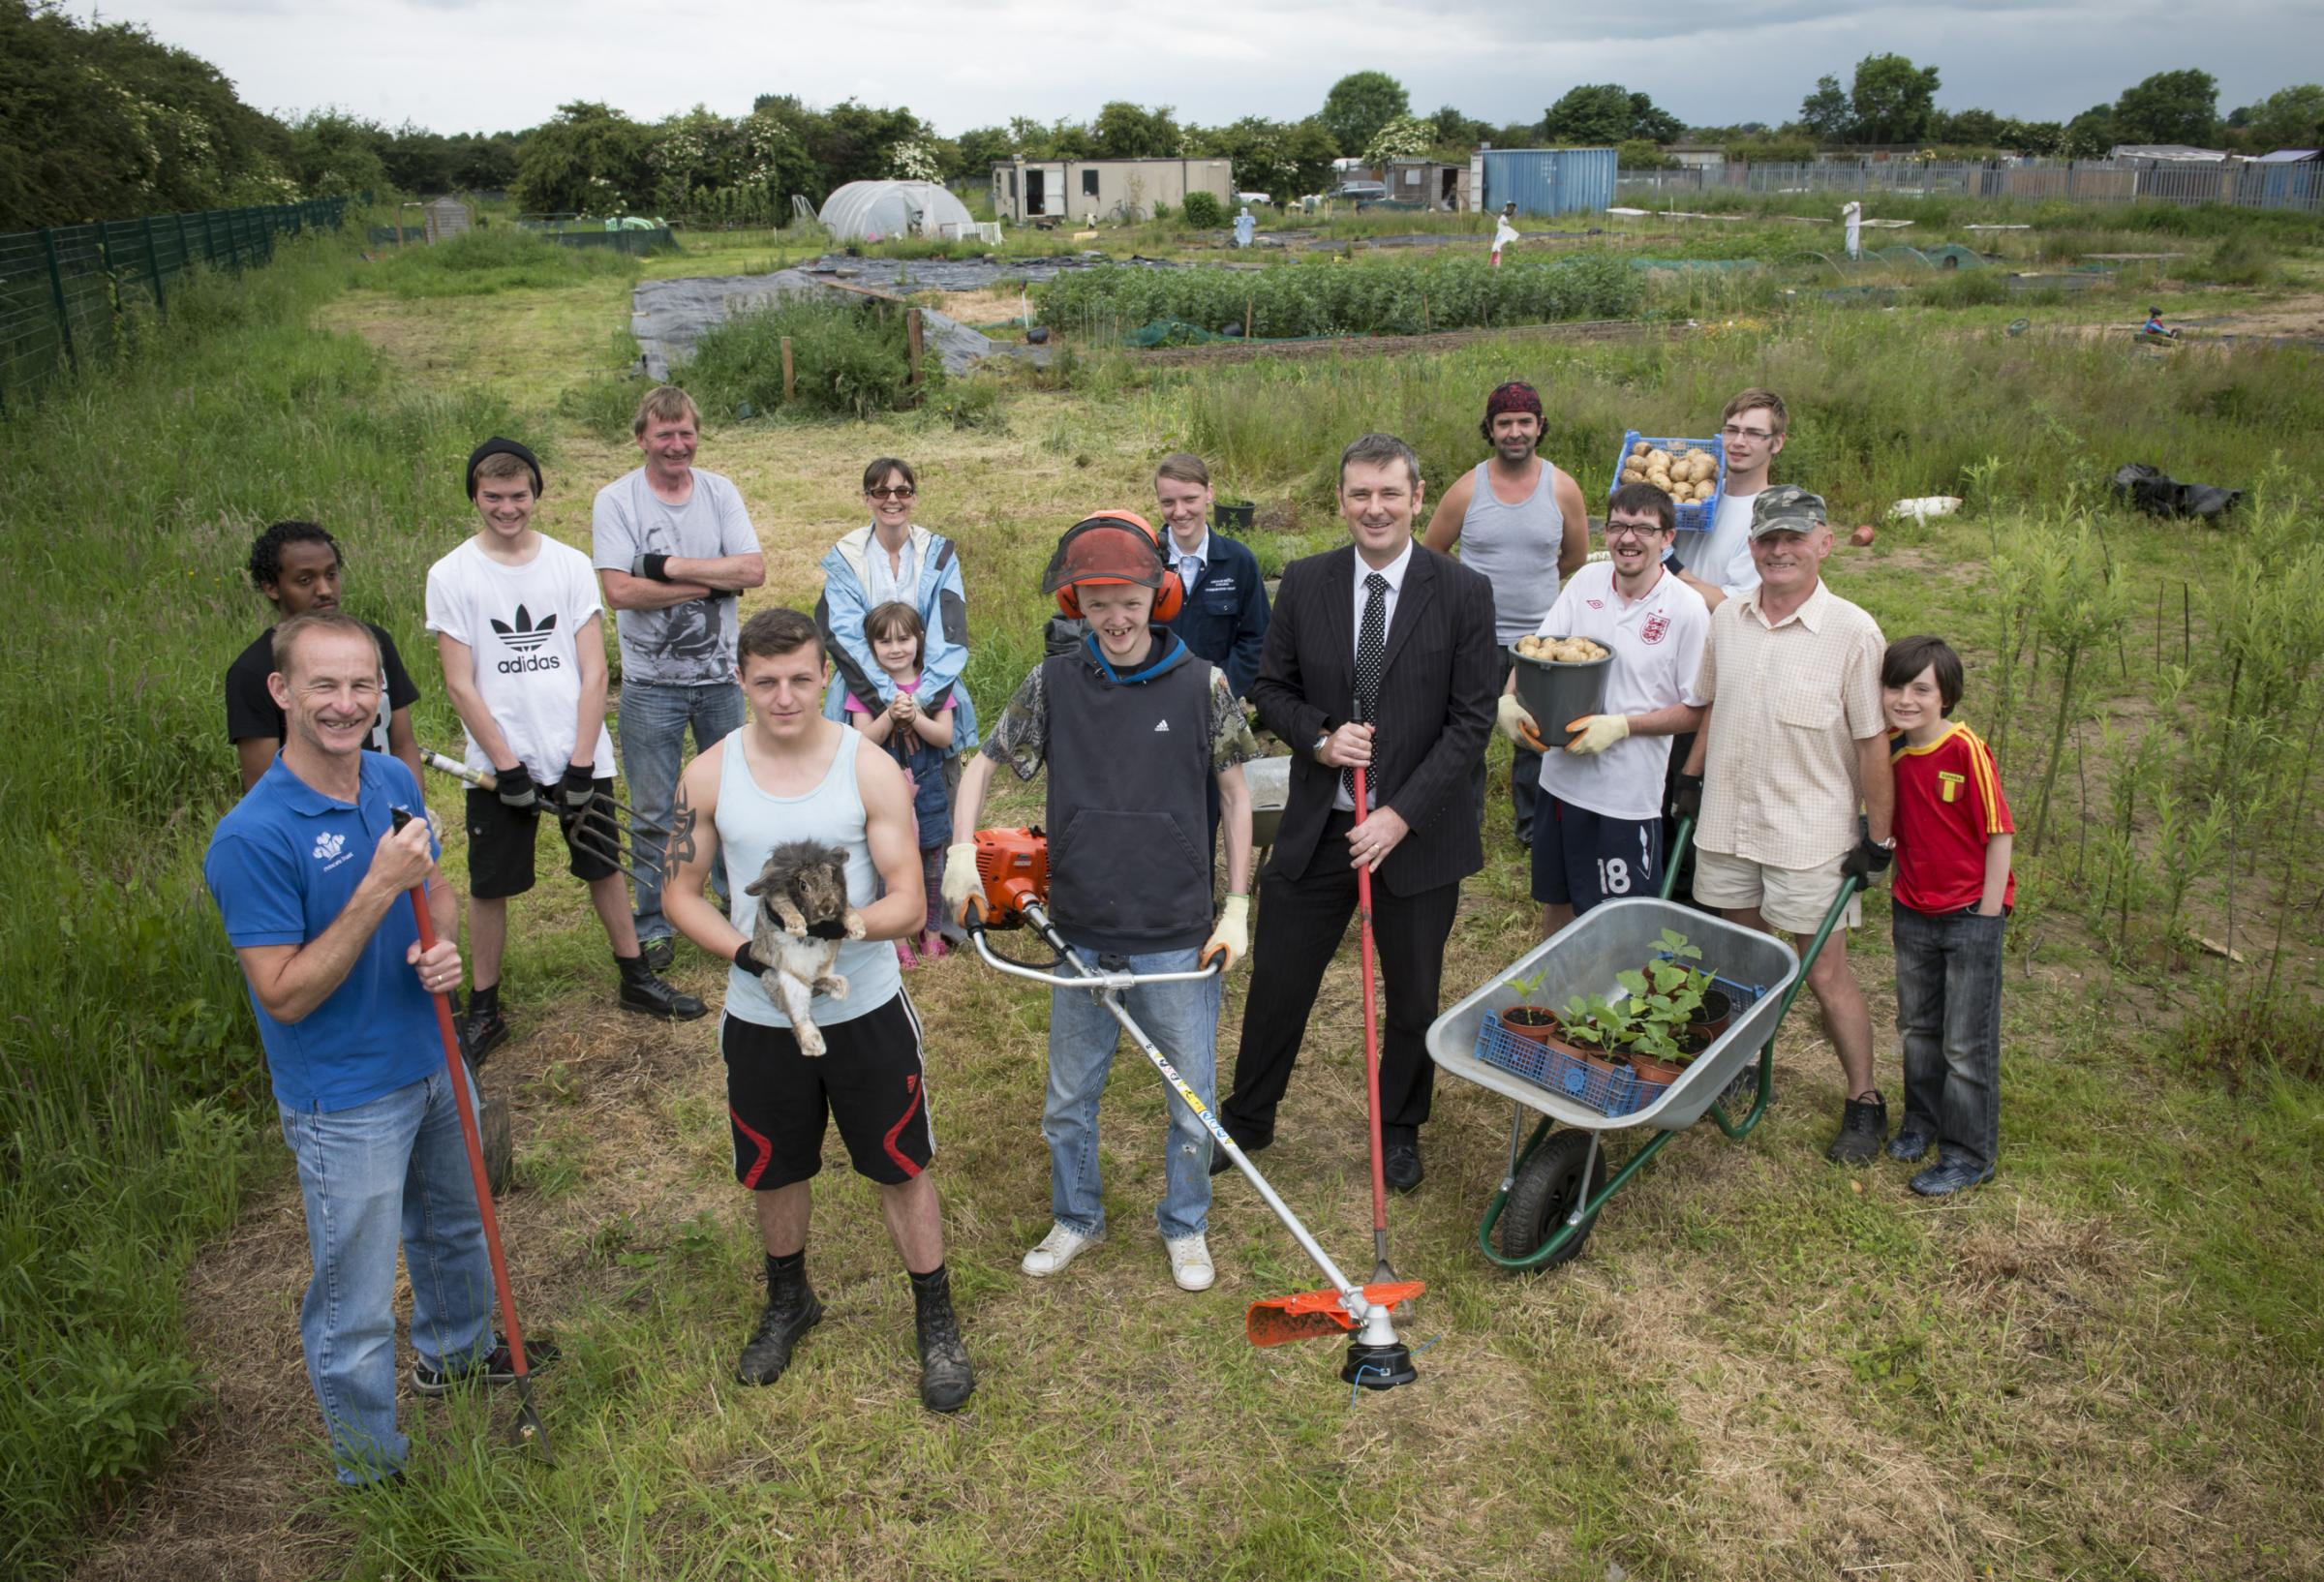 CROP ROTATION: Peter Taylor (fourth from left, front) of UK Steel Enterprise lends a hand at the allotments with Martin Copley (front left) and members of The Prince's Trust Team and the Harmony Growing Project.